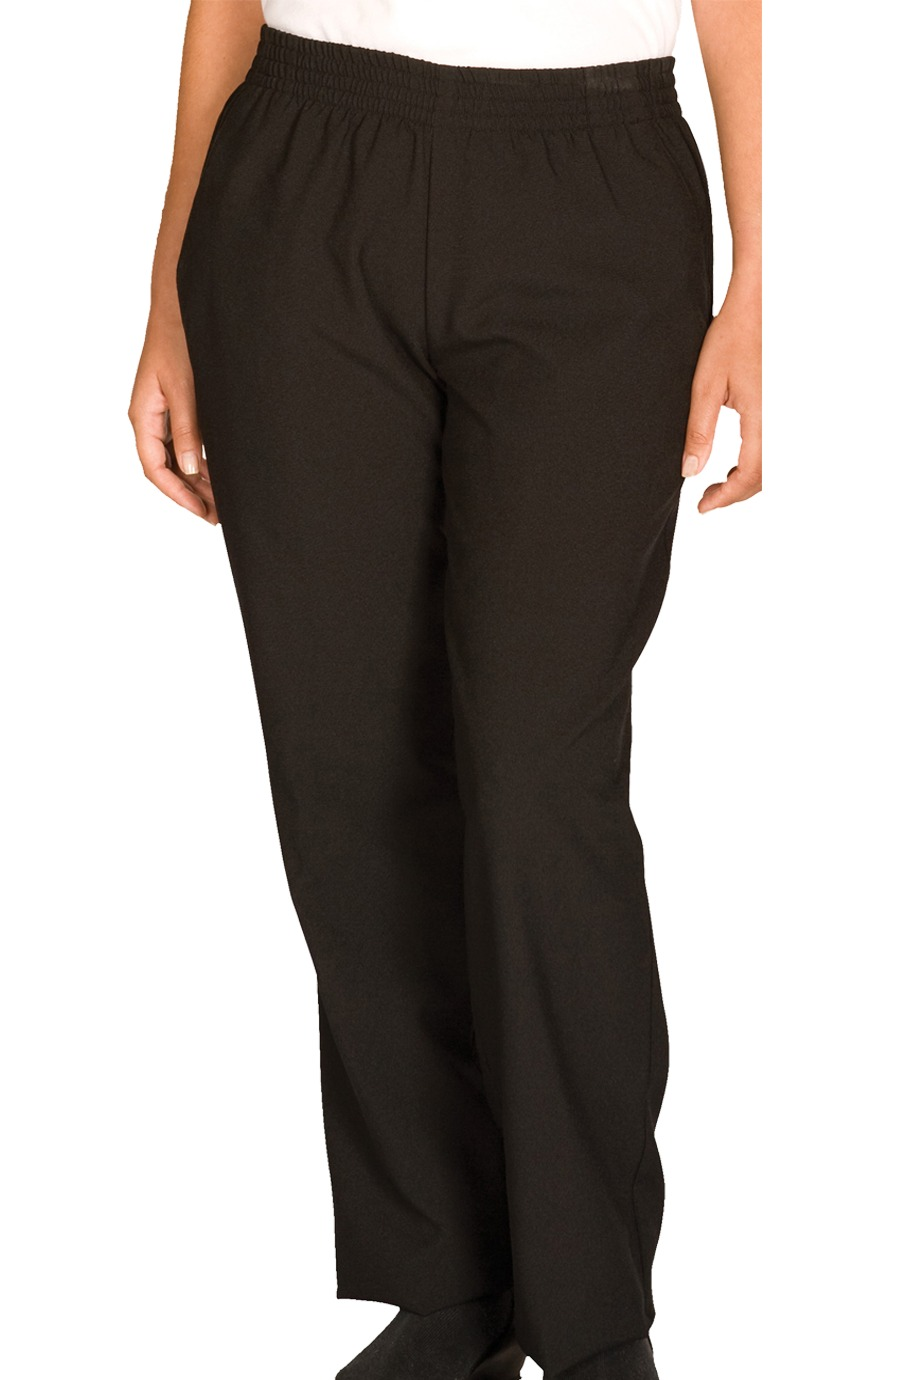 Edwards Garment 8897 - Women's Pull-On-Pant